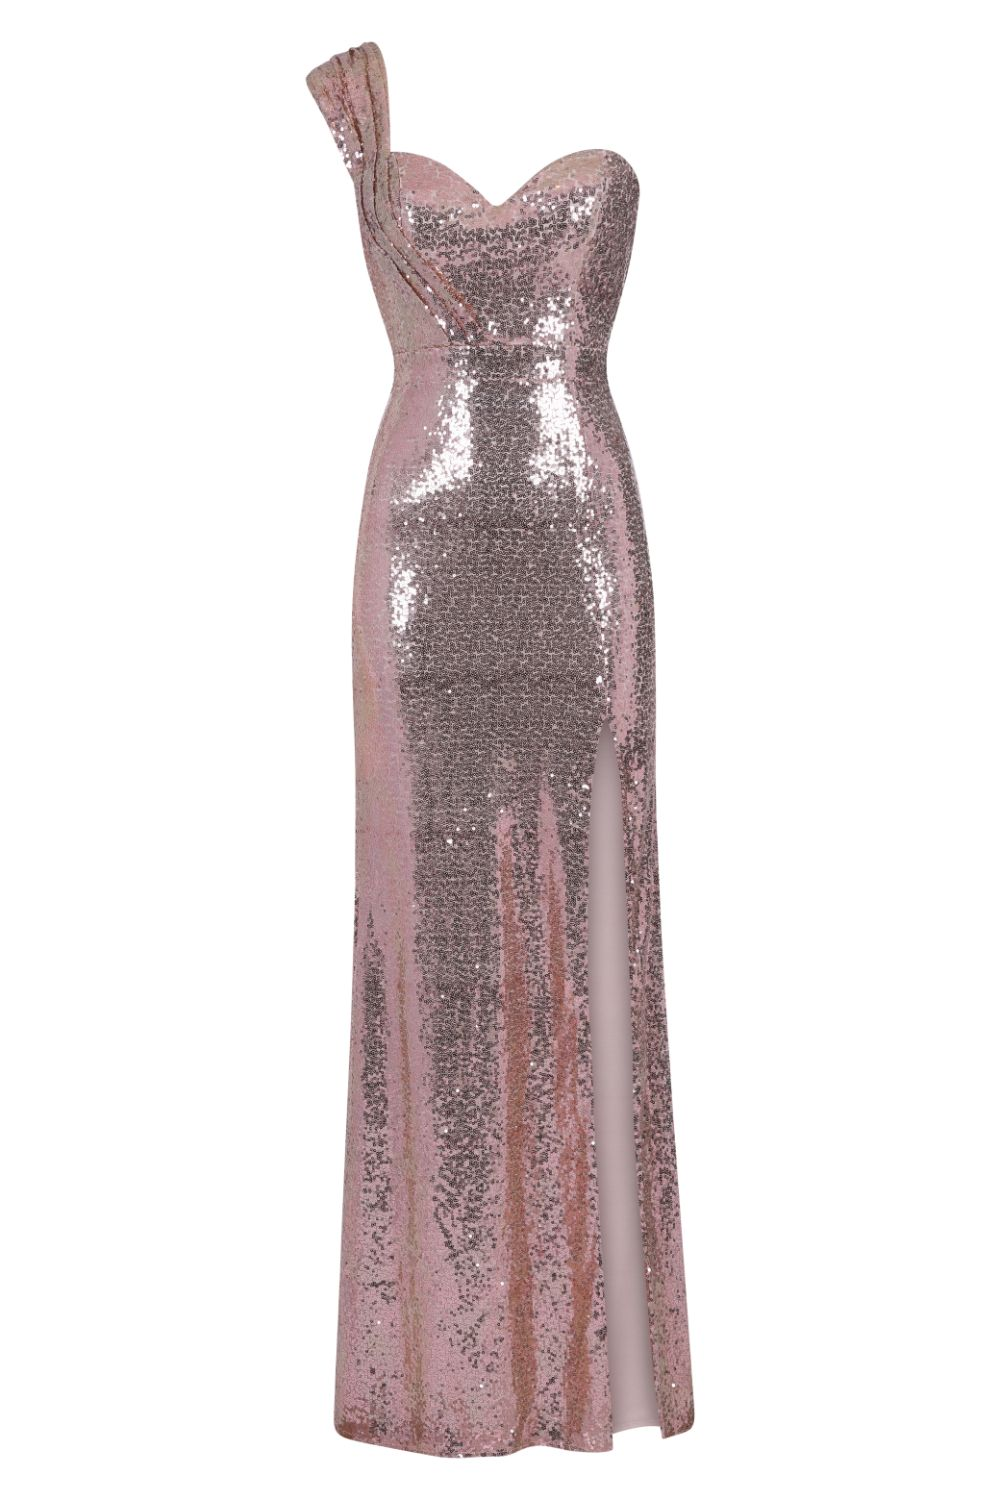 Twisted Love Rose Gold Sweetheart Sequin Slit Fishtail Maxi Dress